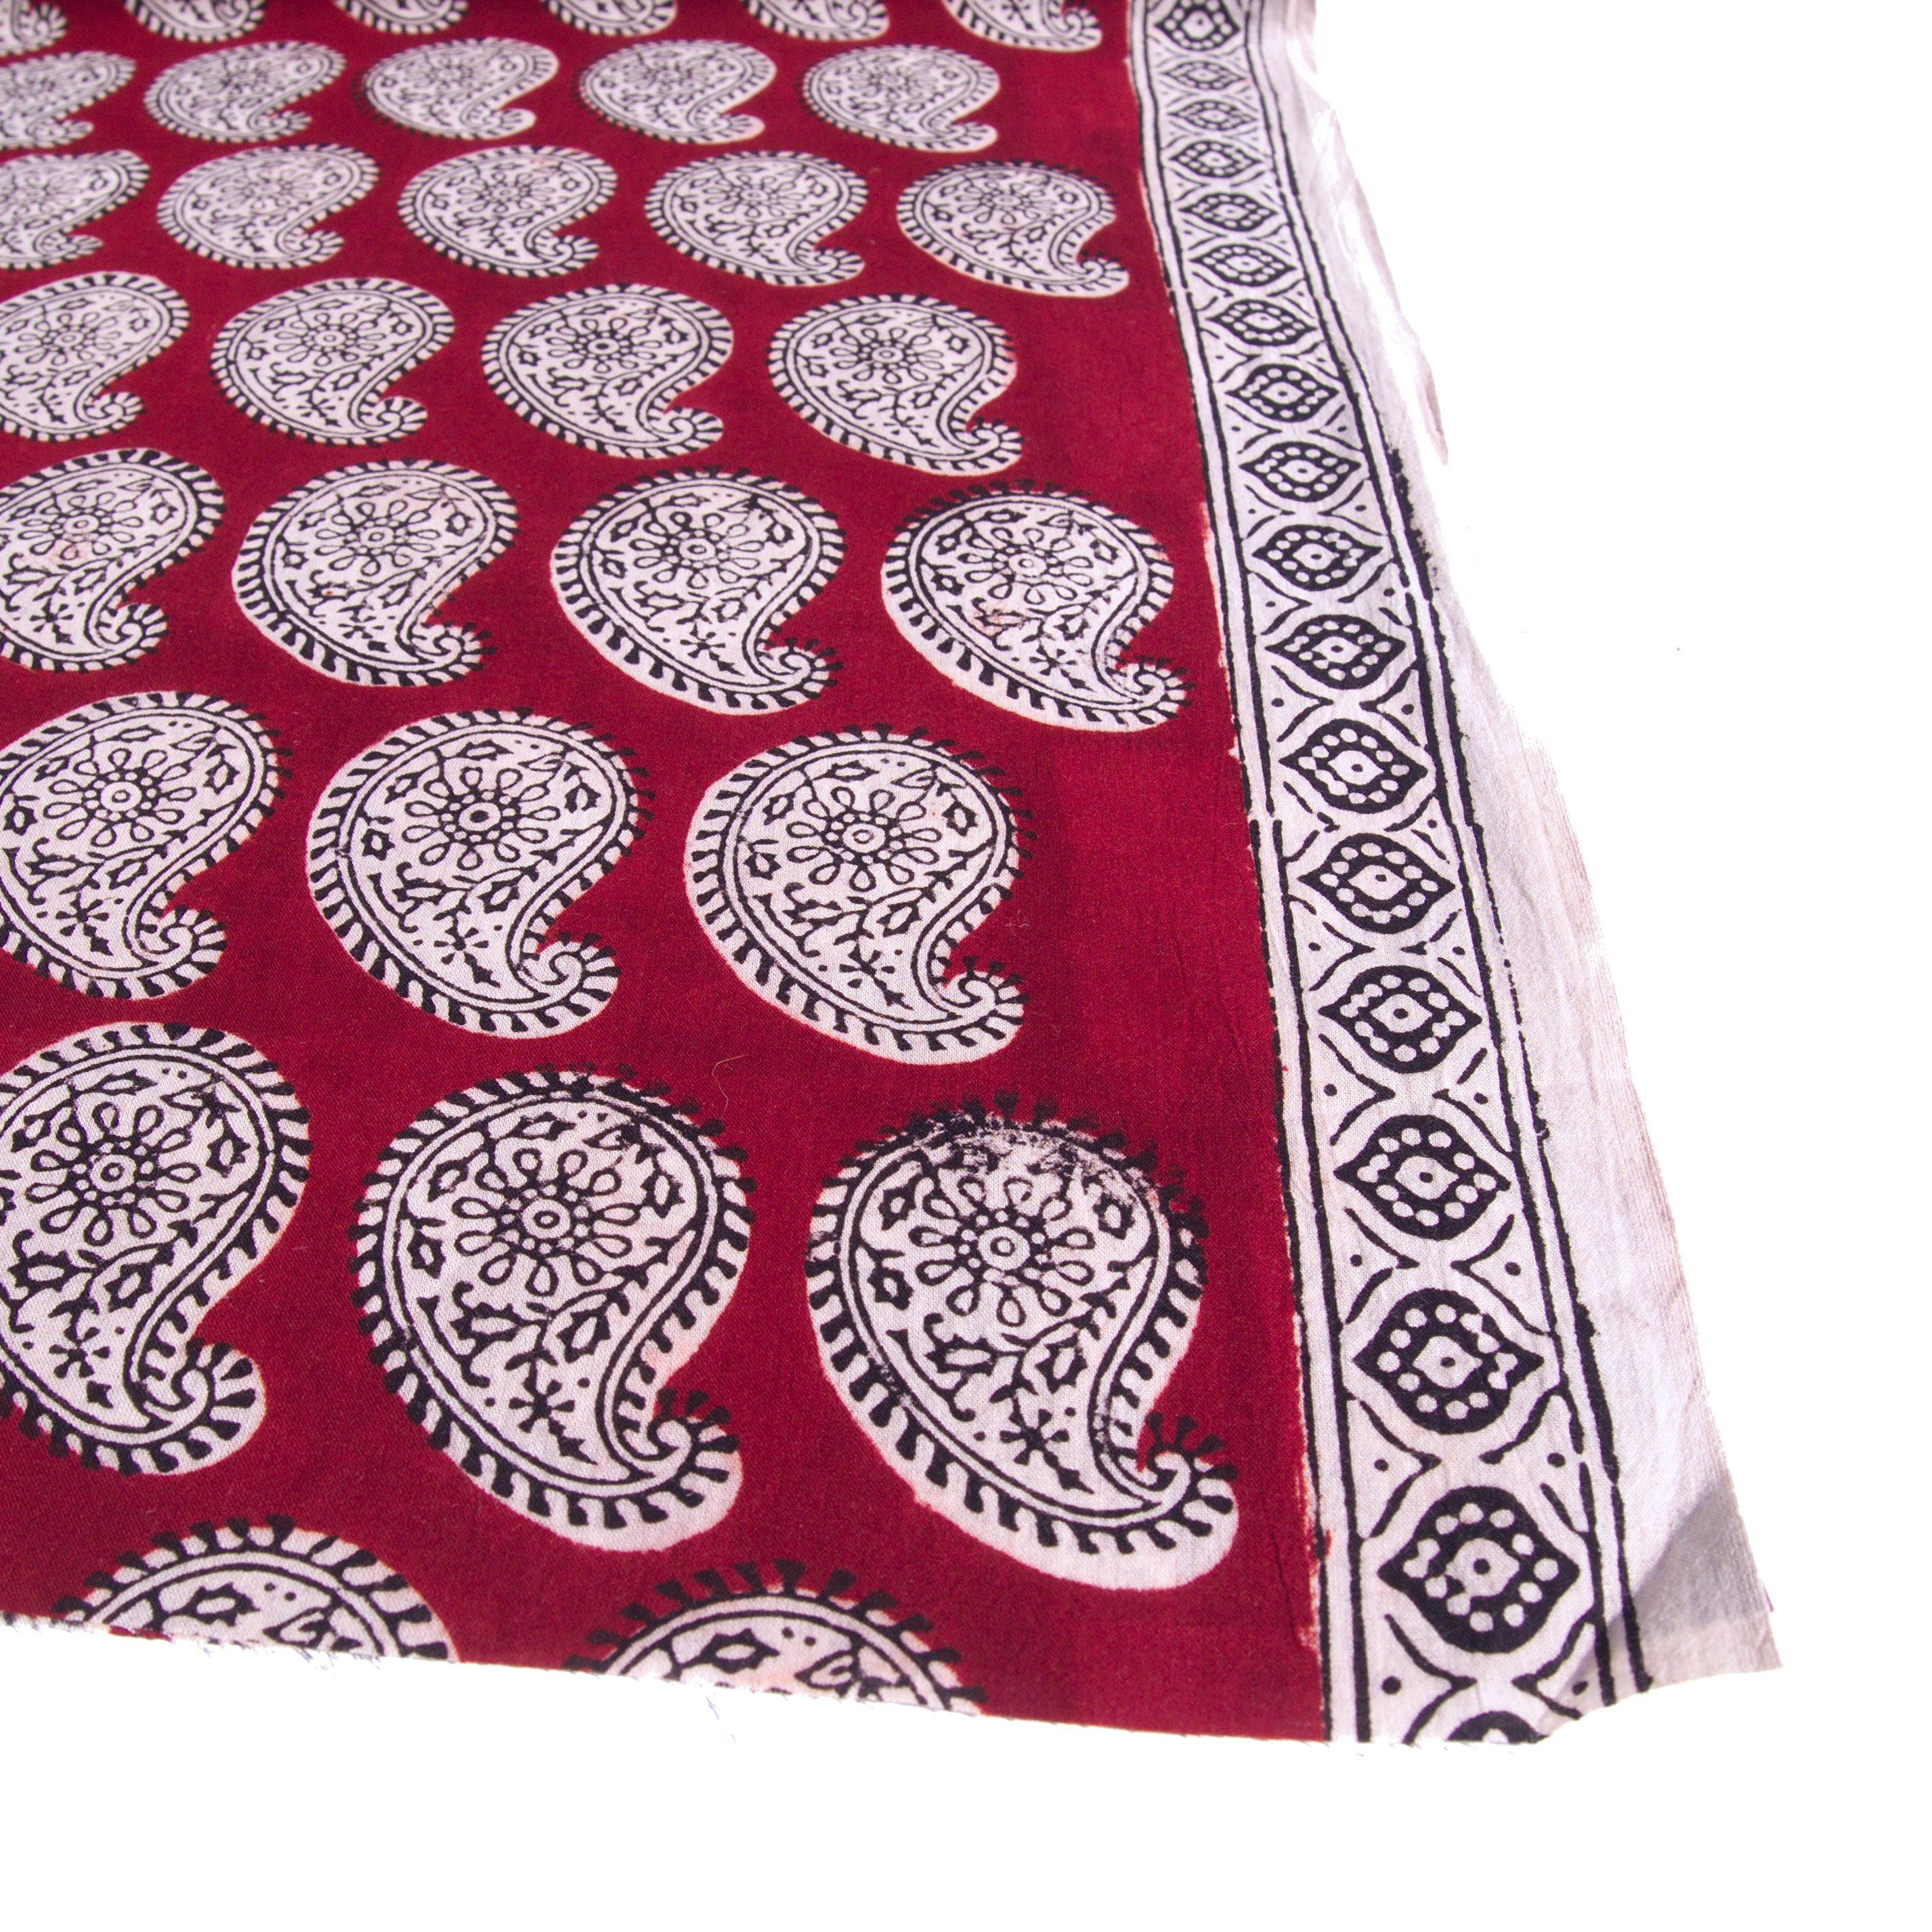 100% Block-Printed Cotton Fabric From India- Bagh - Alizarin Red Paisley Print - Selvedge